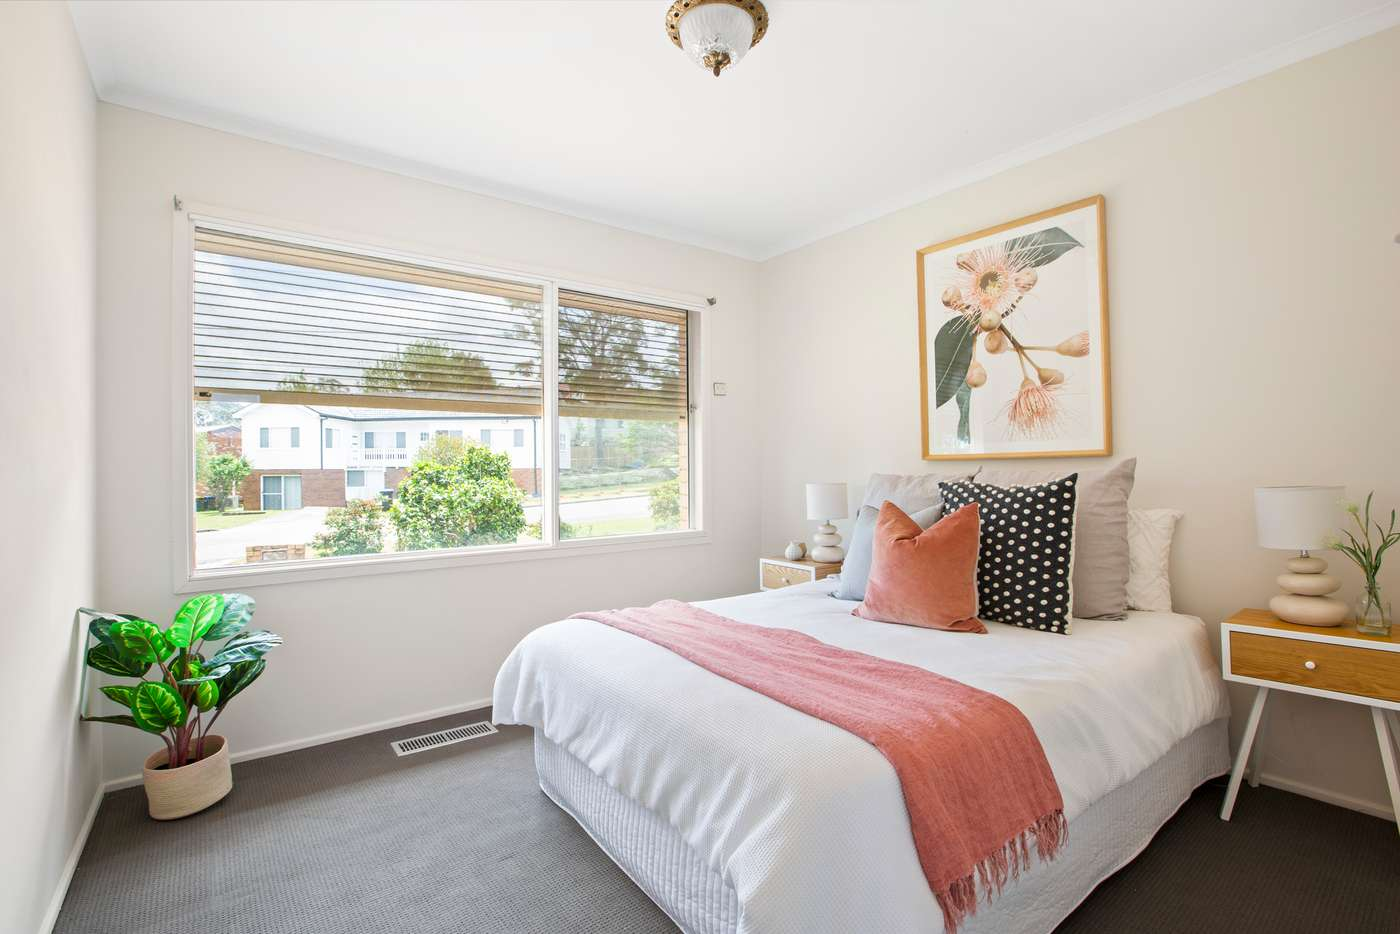 Sixth view of Homely house listing, 16 Kalianna Crescent, Beacon Hill NSW 2100